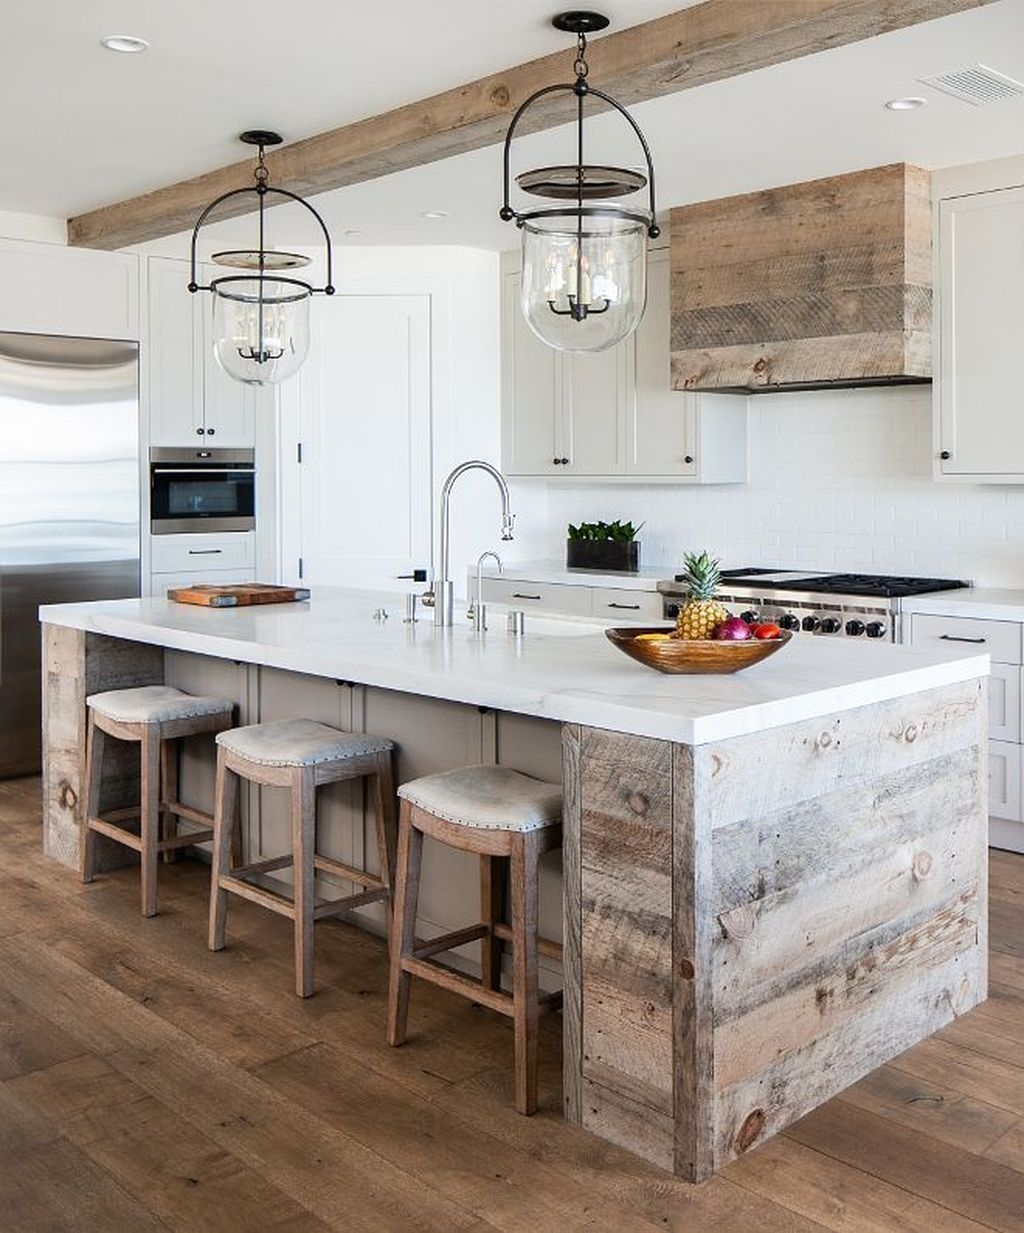 29+ beautiful beach style kitchen ideas for your beach house